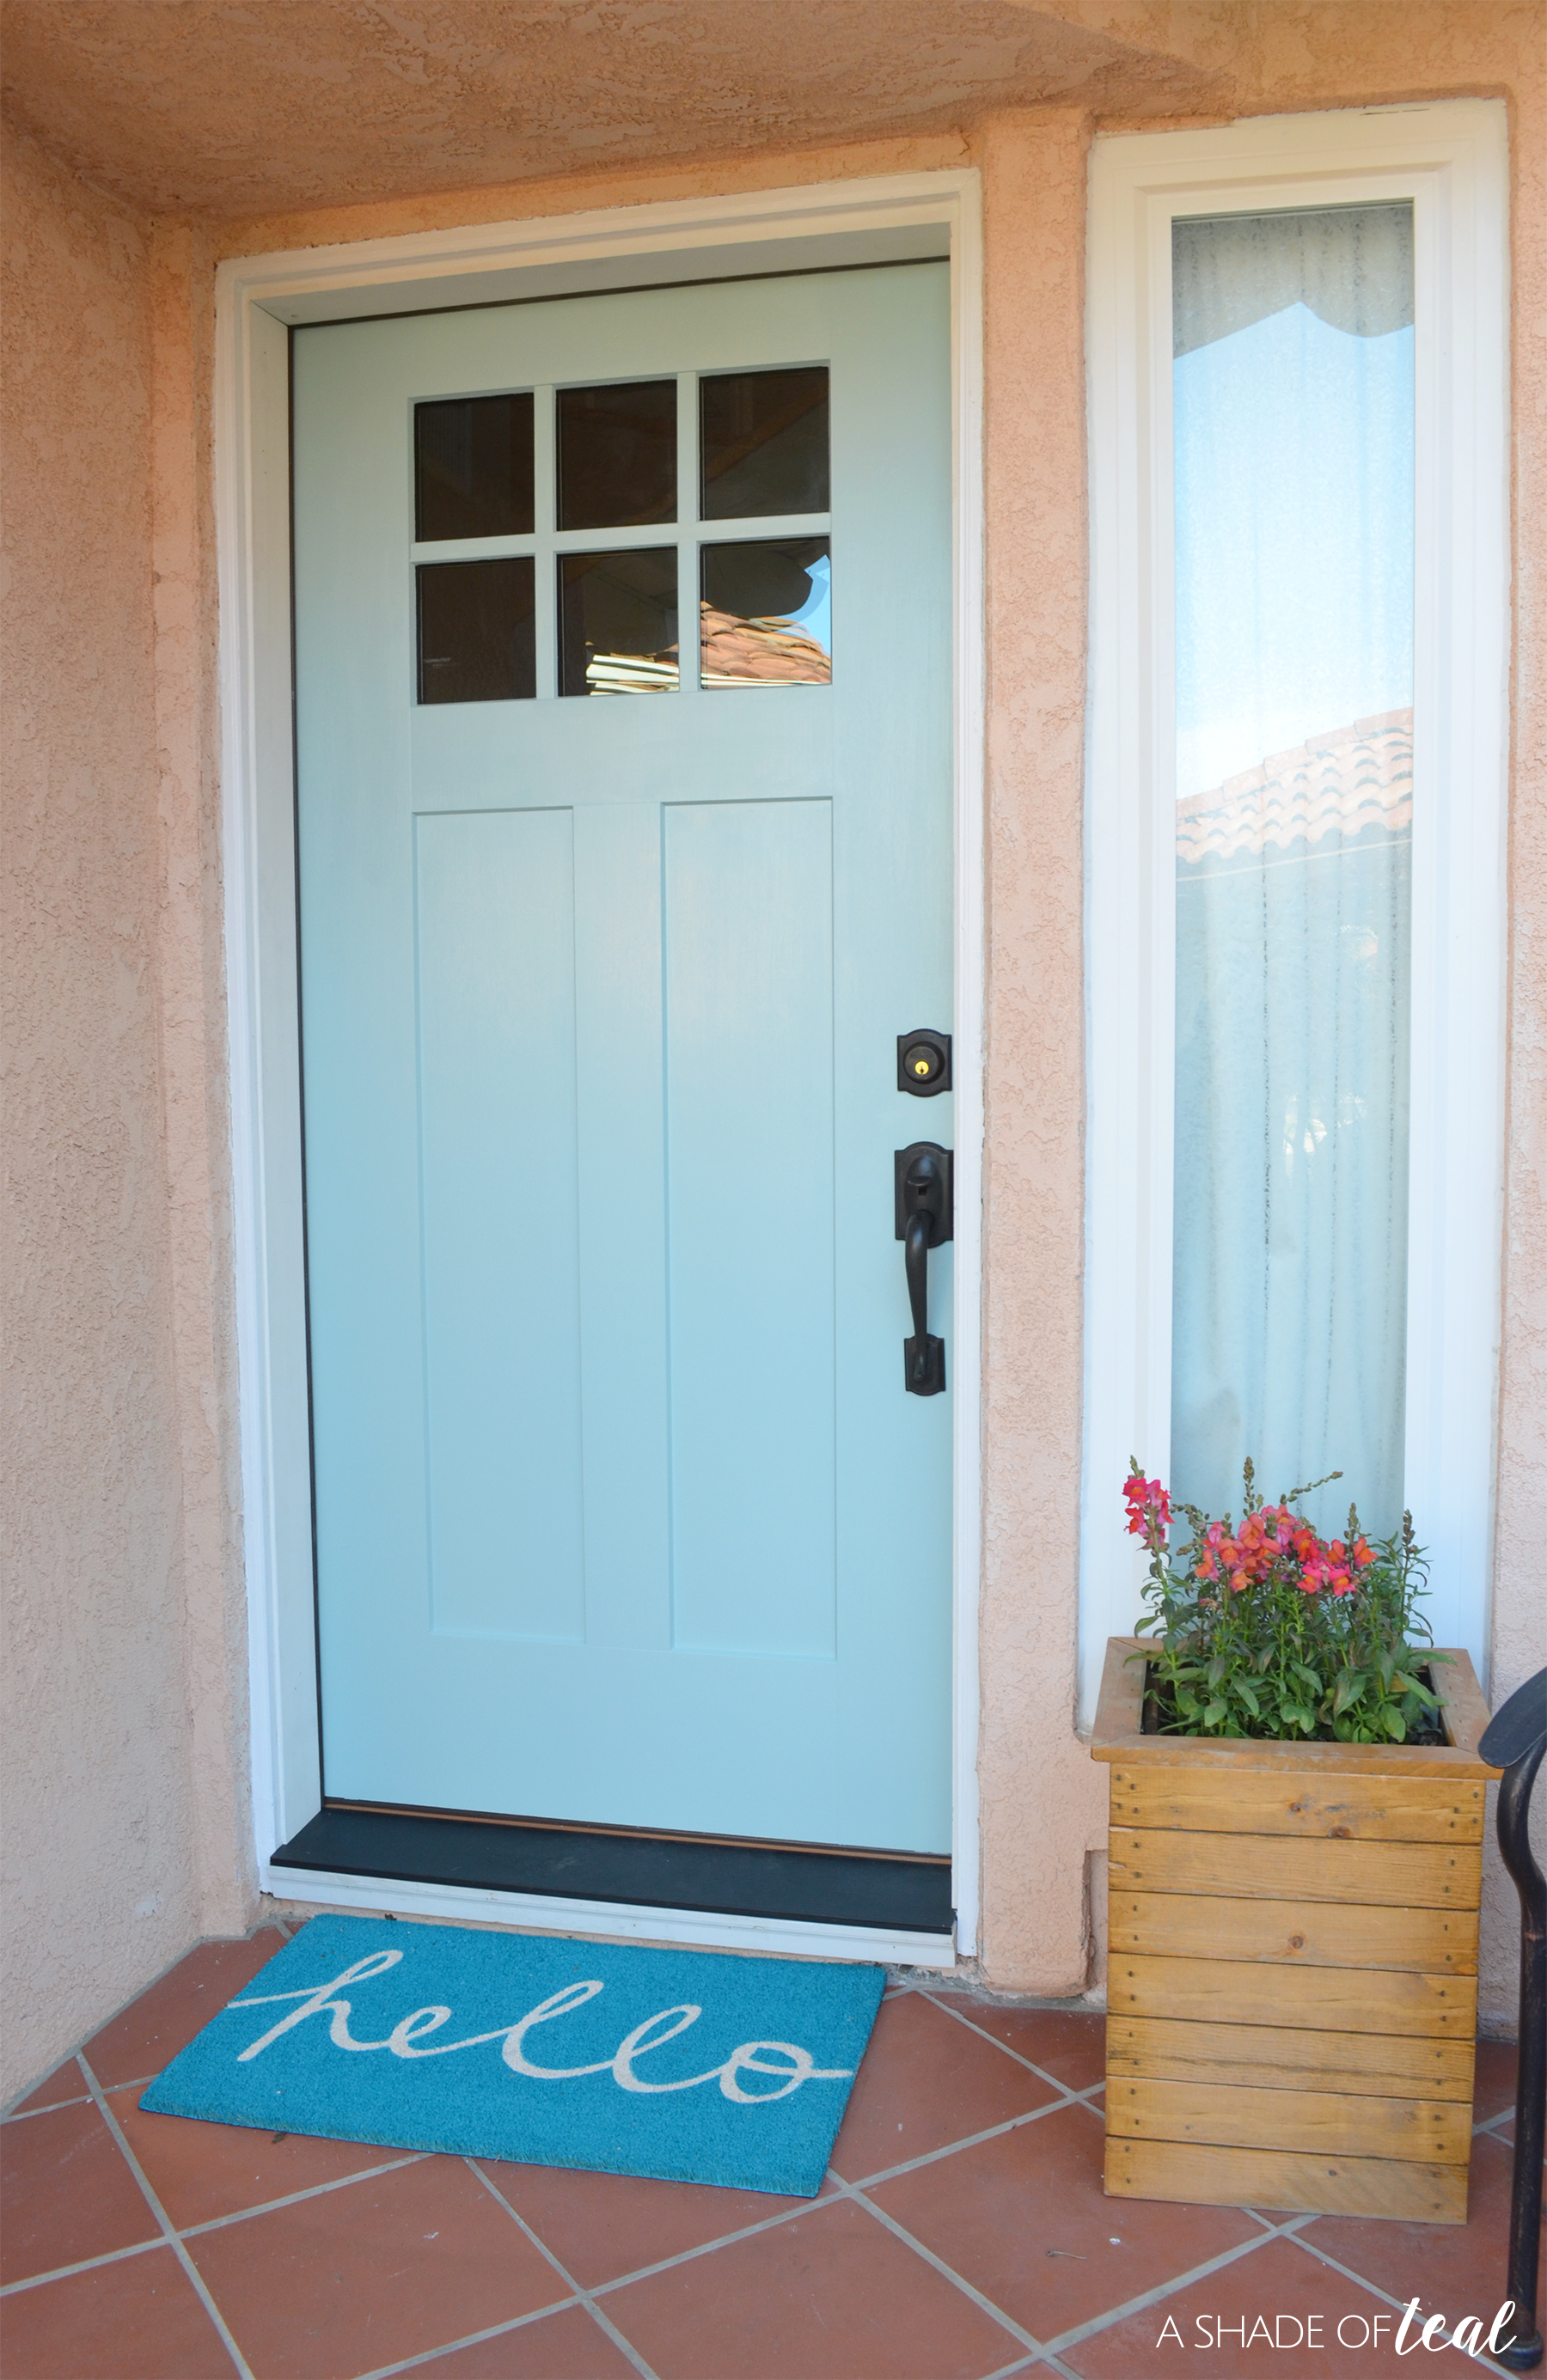 Below Is A Before Picture Of Our Builder Grade Door. This Picture Was After  I Gave It A New Coat Of Paint. It May Look Good From The Outside, ...